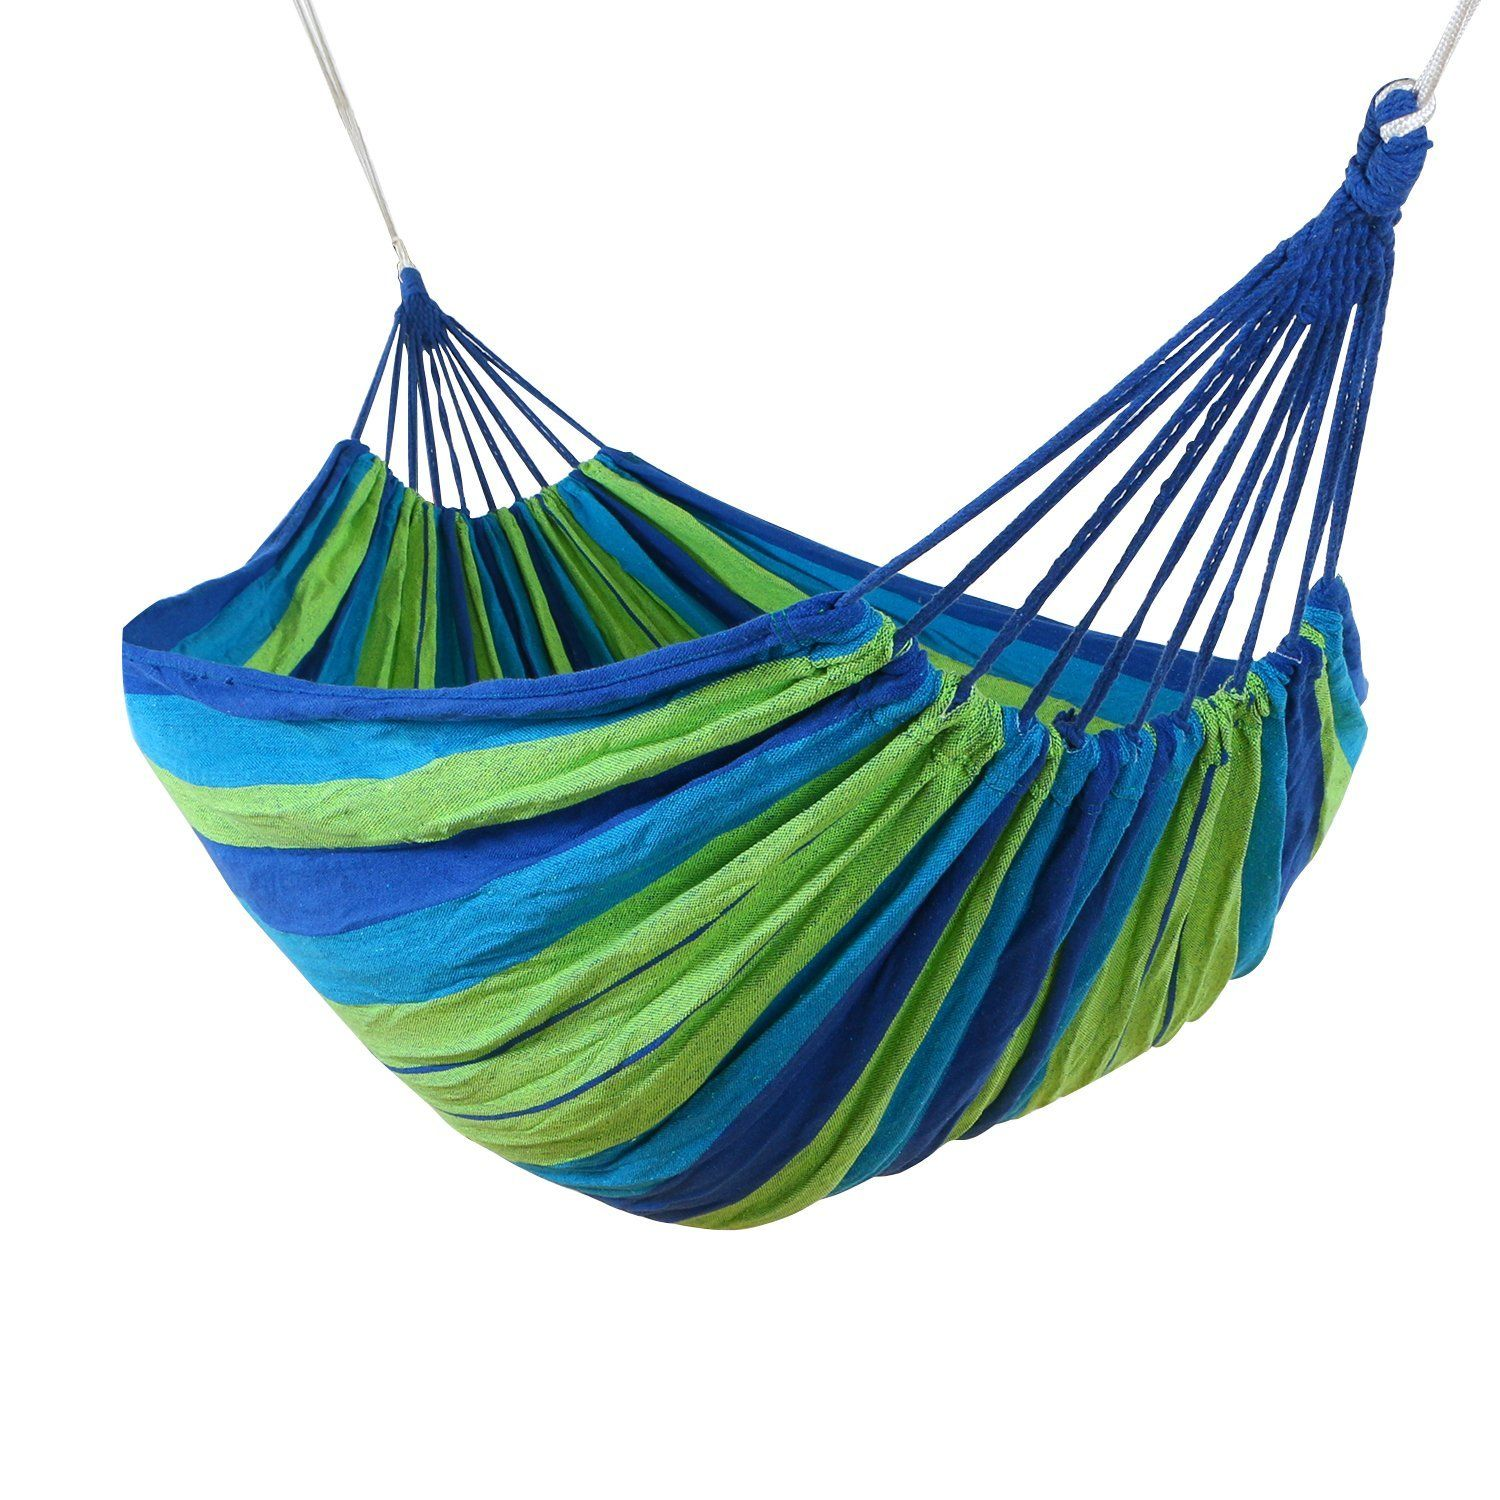 ups garden product canvas nvie high stripe travel fedex portable buy camping hammock swing hang double person or quality outdoor bed